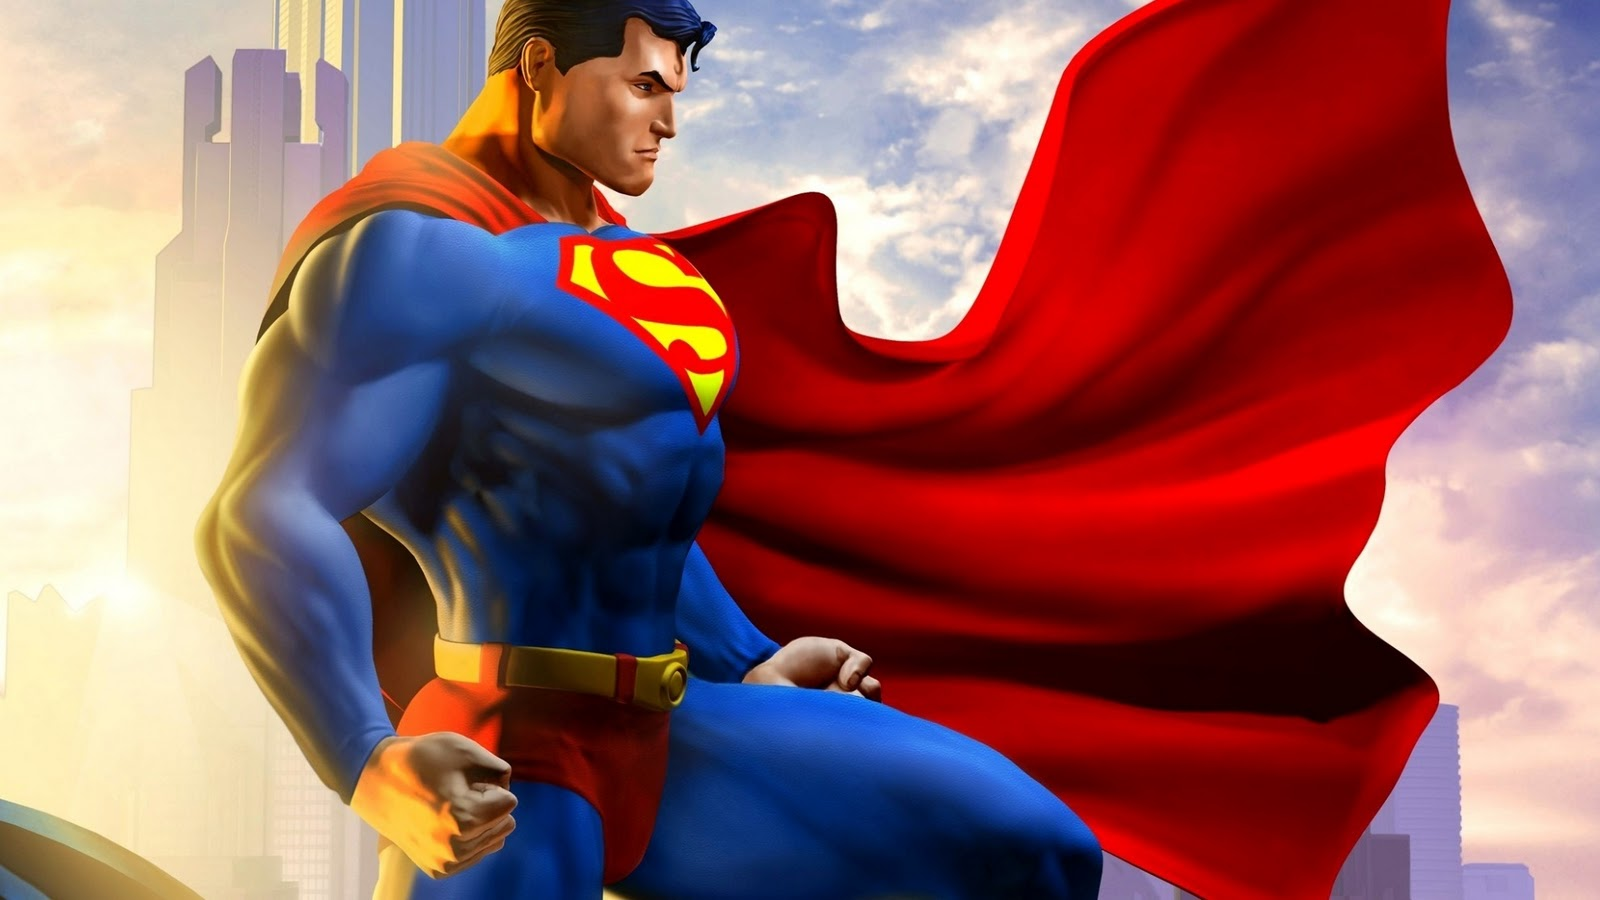 http://4.bp.blogspot.com/-I0xt7uNgygM/Tq12cDYuB-I/AAAAAAAAAFA/KpLnxh81j7I/s1600/man-of-steal-superman-wallpaper-hd.jpg